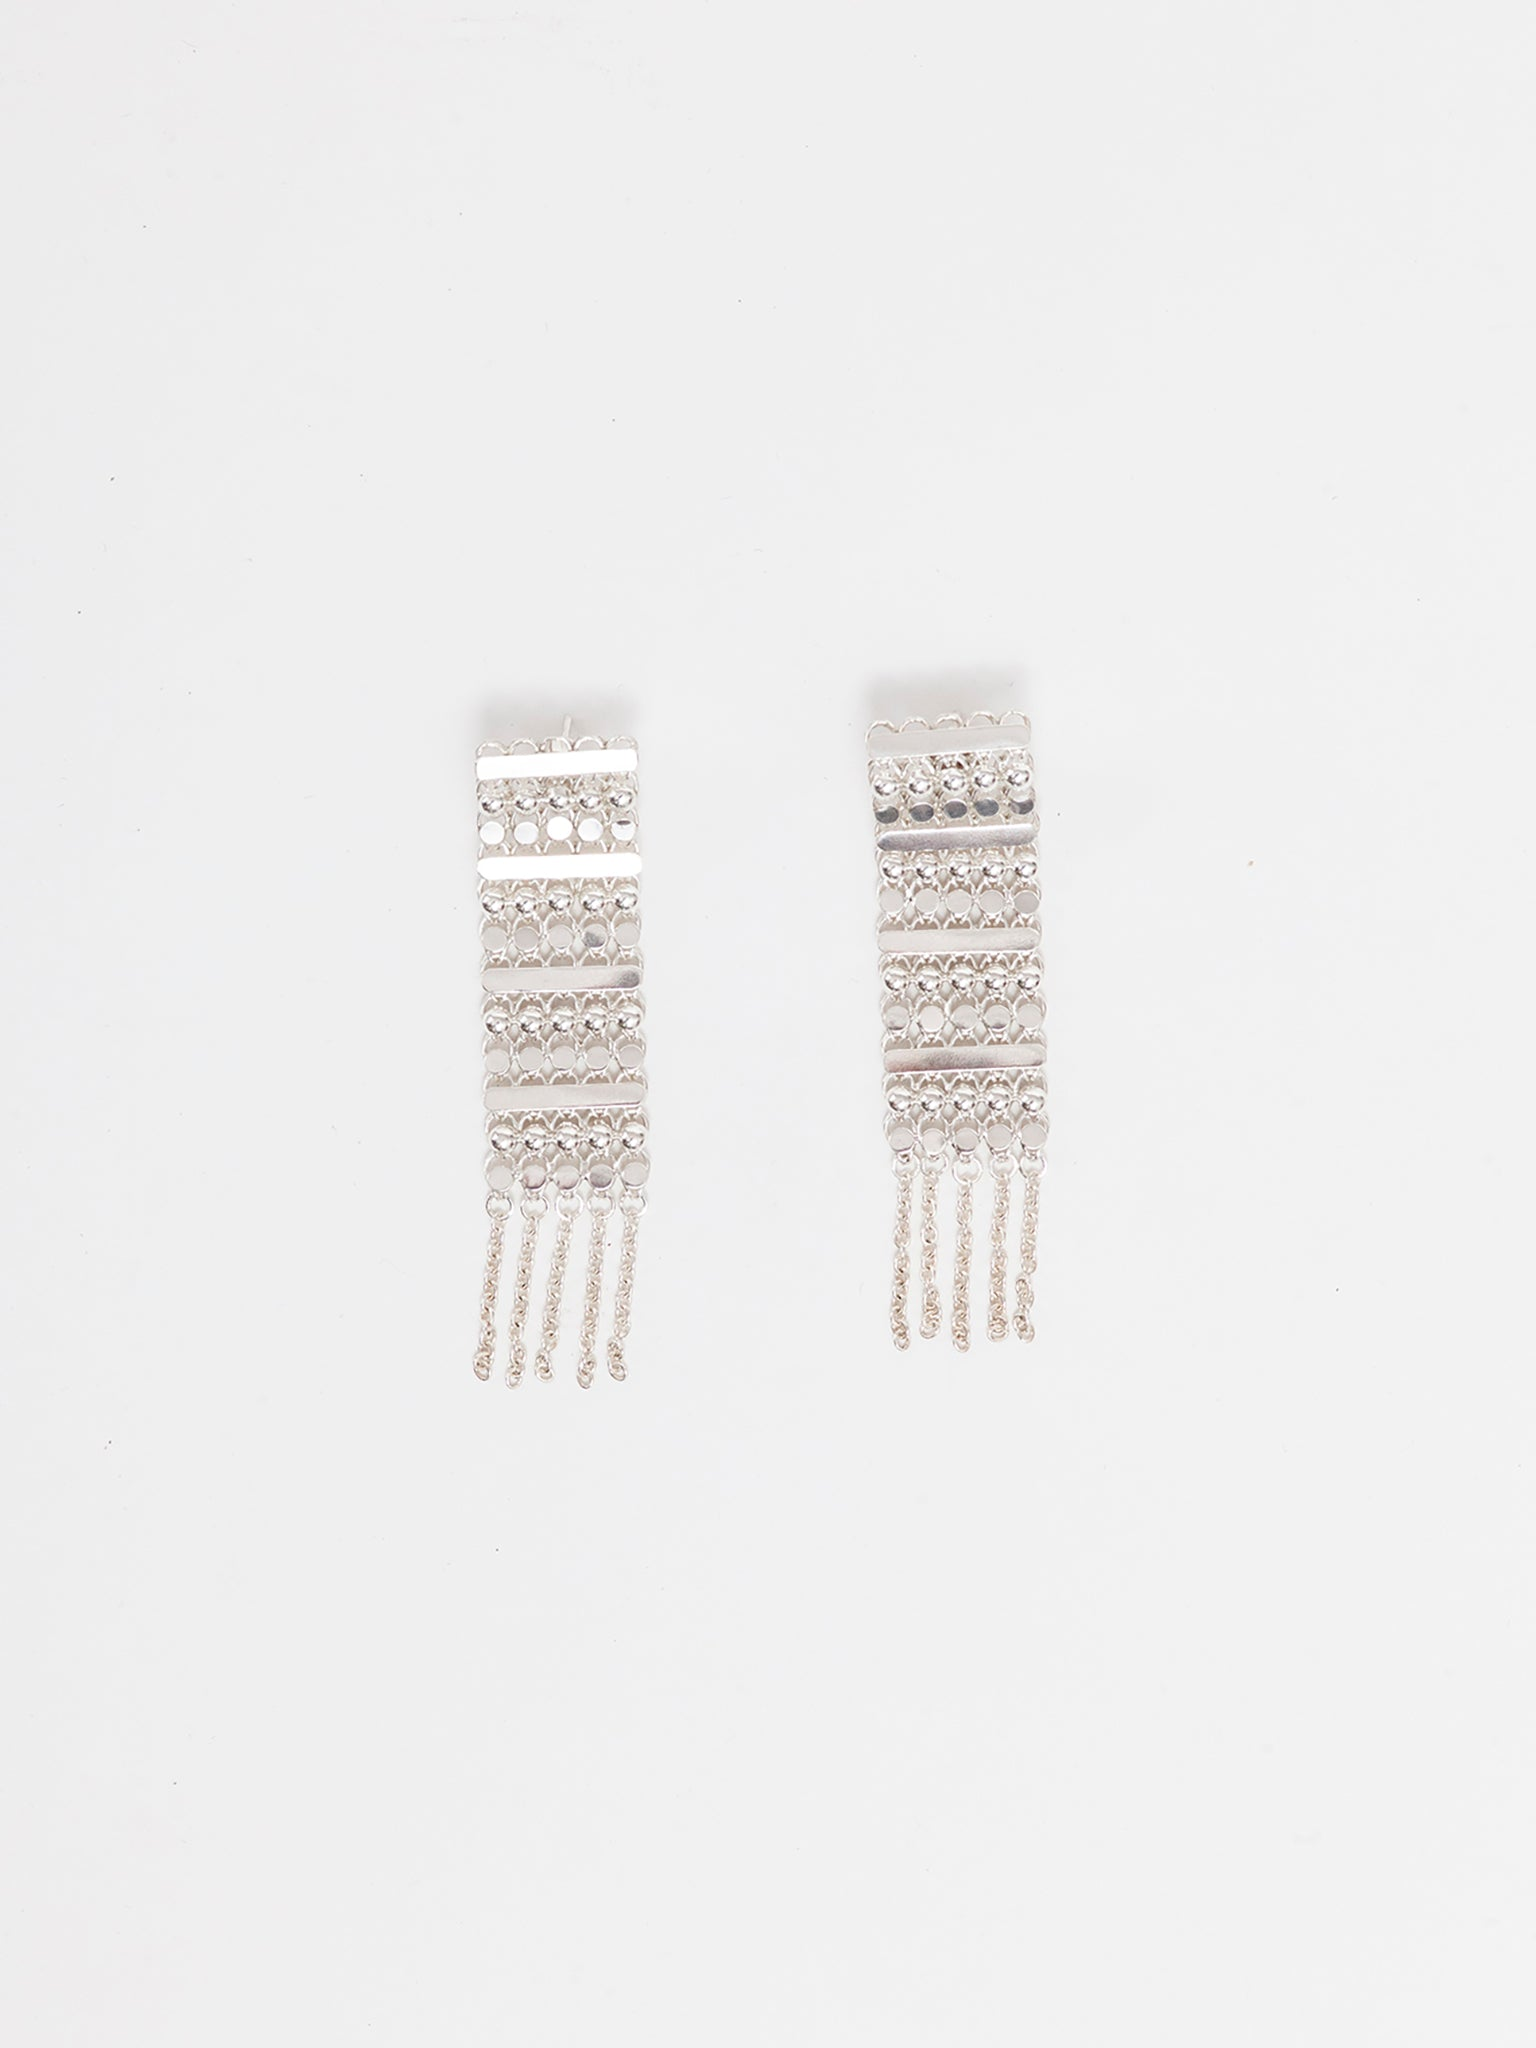 MI Earrings, 925 silver